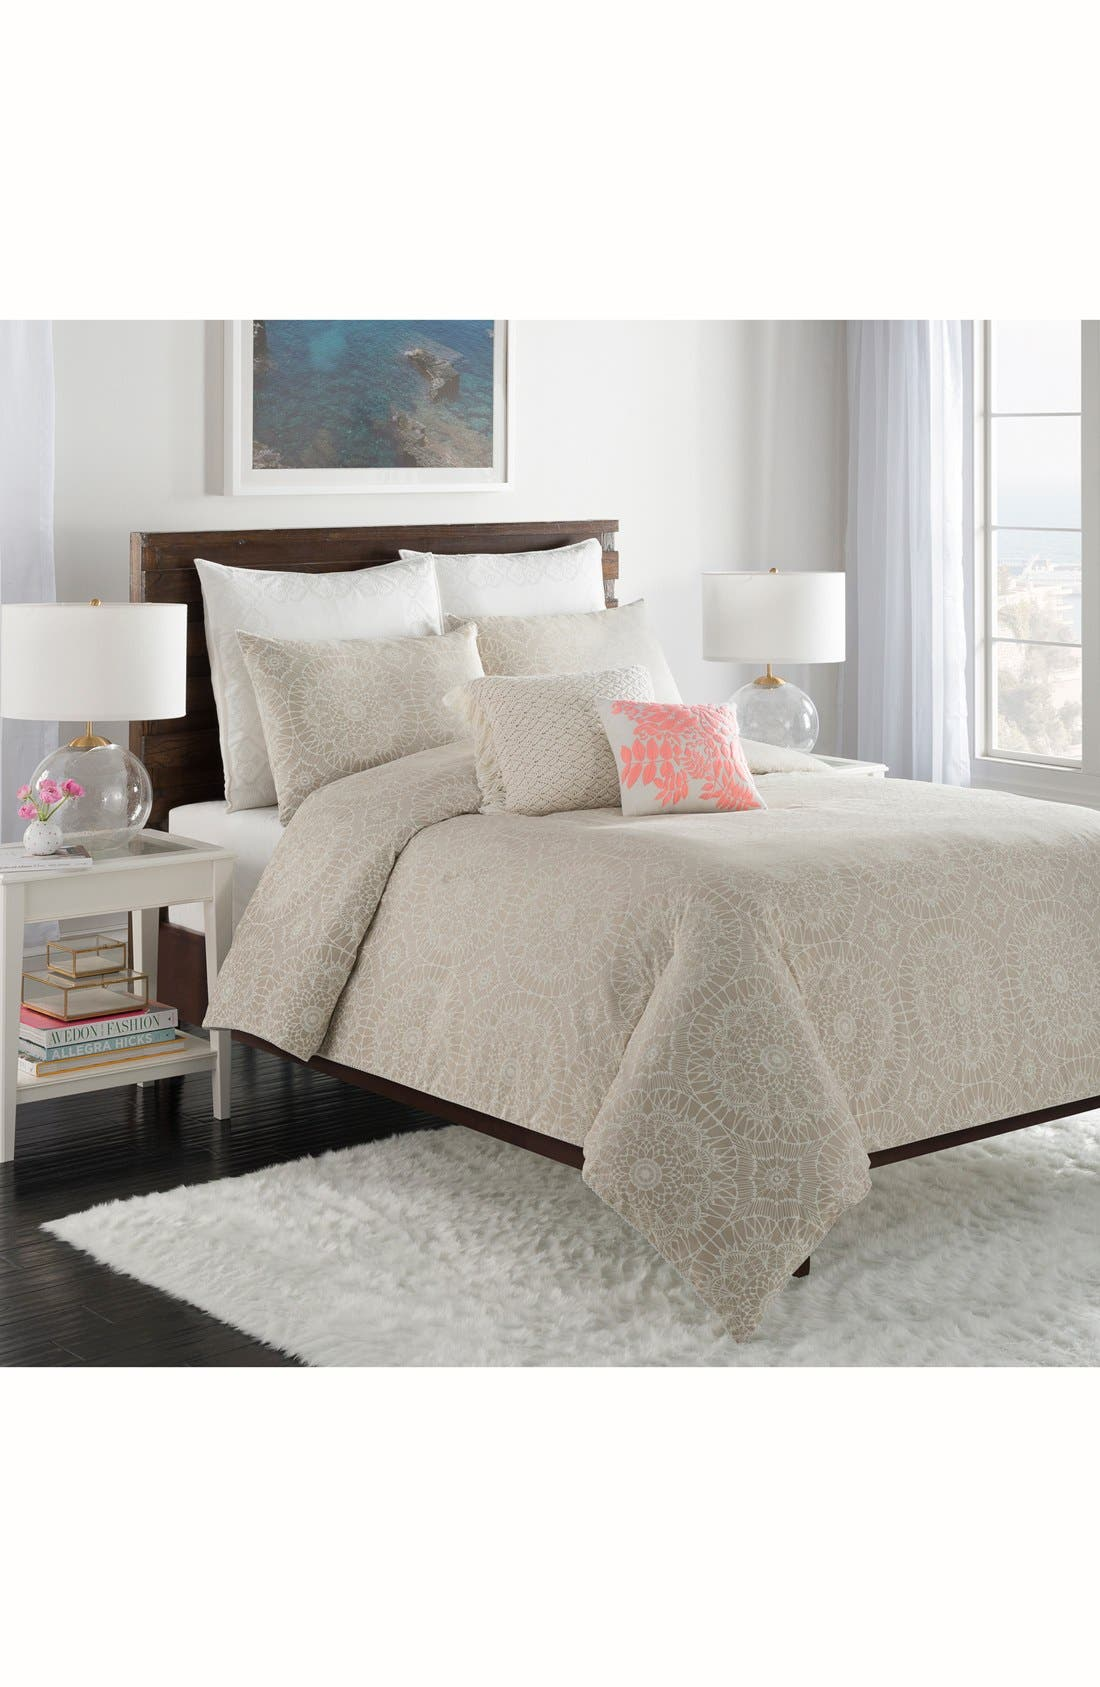 'Lace Medallion' Duvet Cover,                             Main thumbnail 1, color,                             250